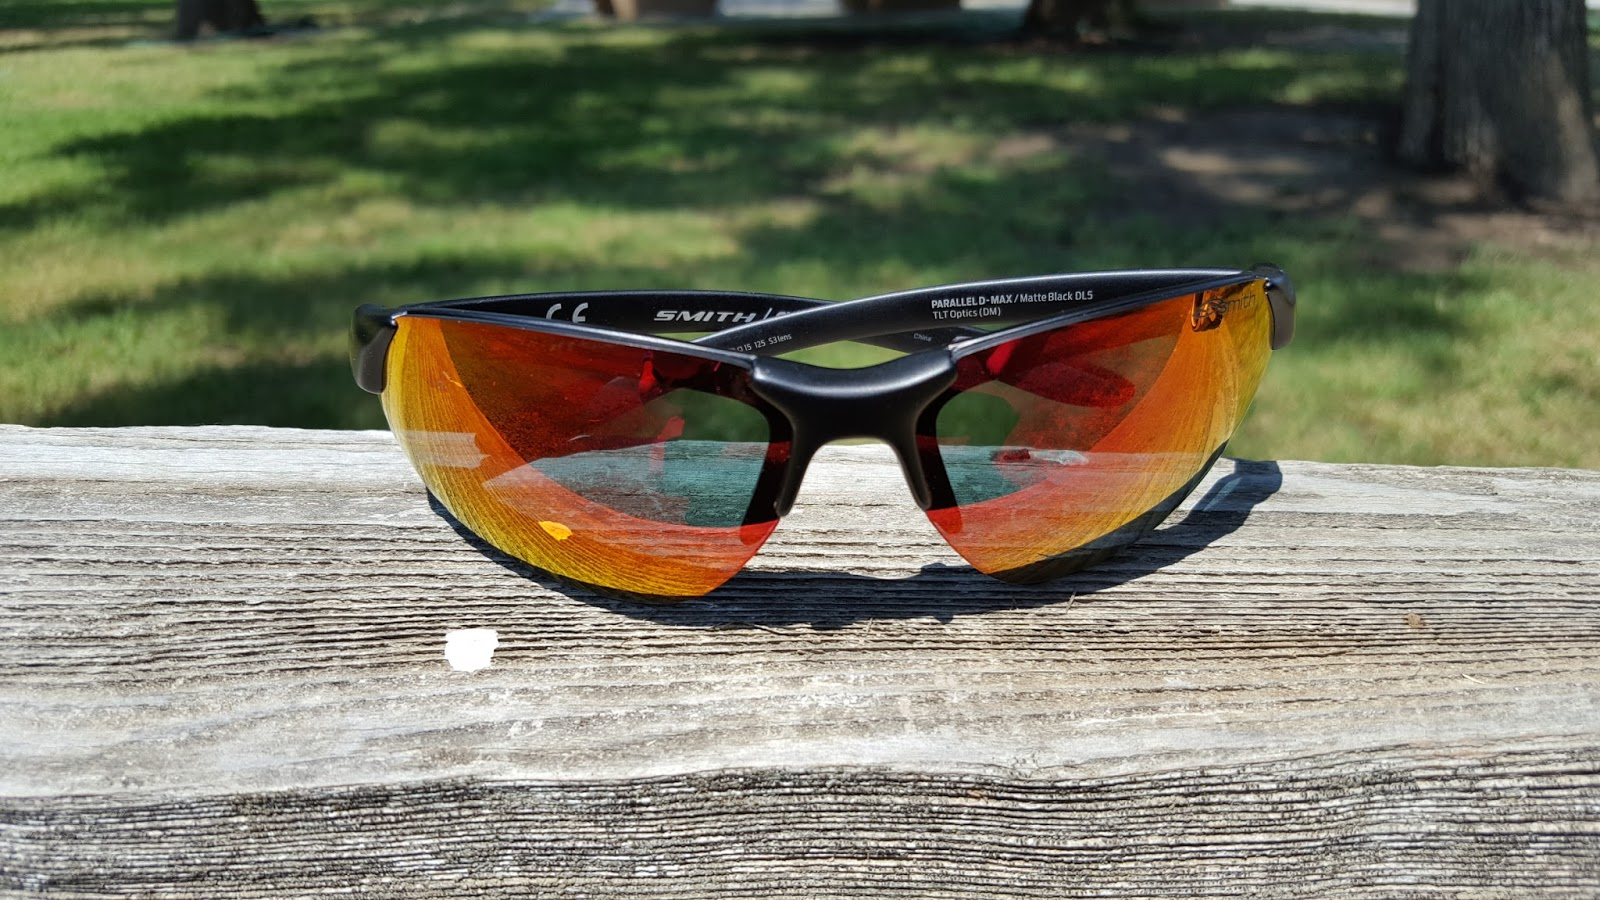 219e32ca2b I received a pair of the Parallel D Max to test out. I picked these because  of the shape. I have noticed that certain sunglasses and shapes work best  for my ...